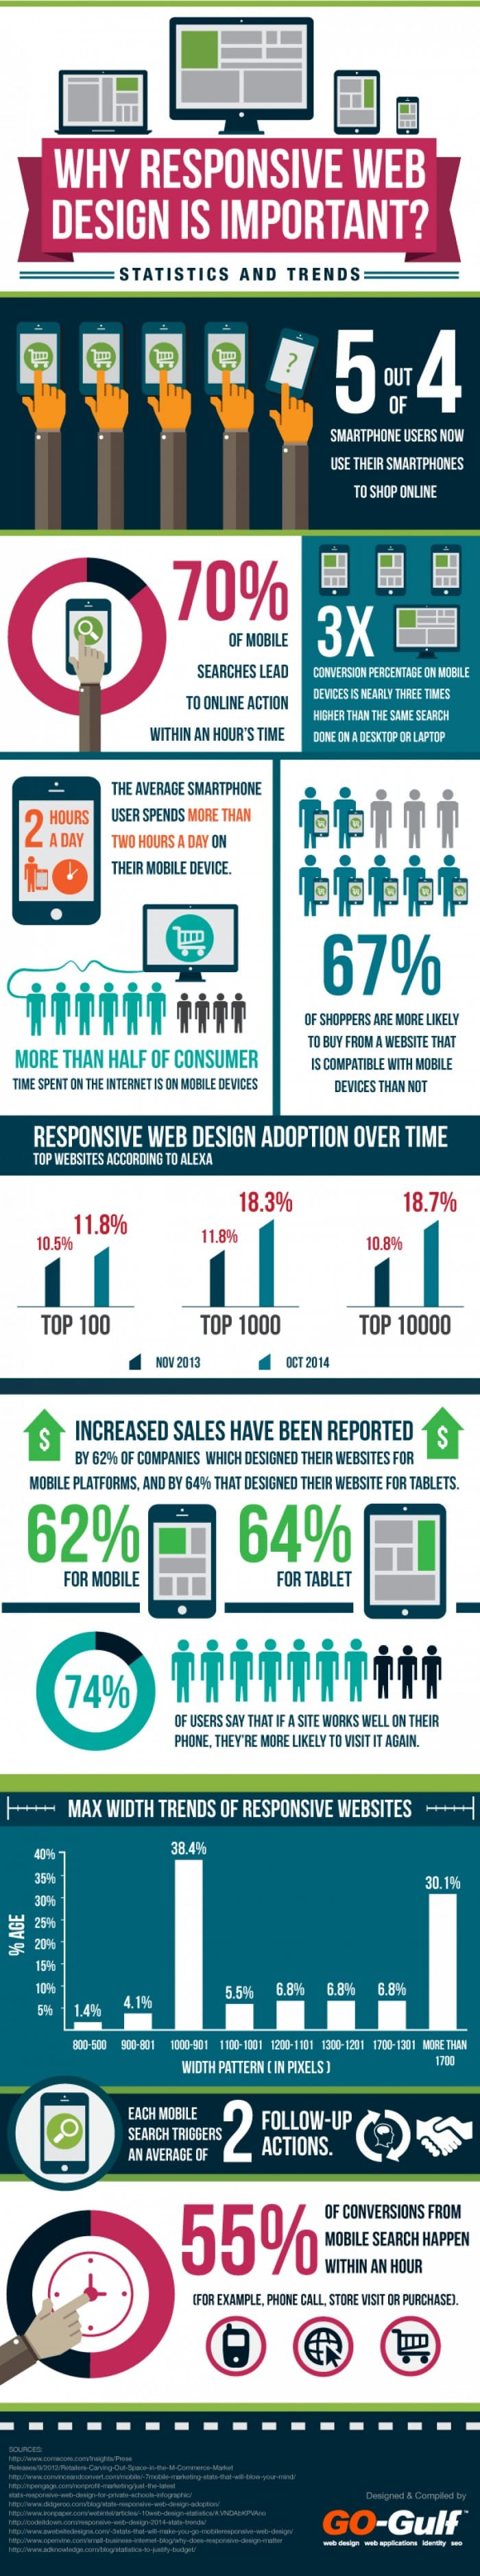 why-responsive-web-design-is-important